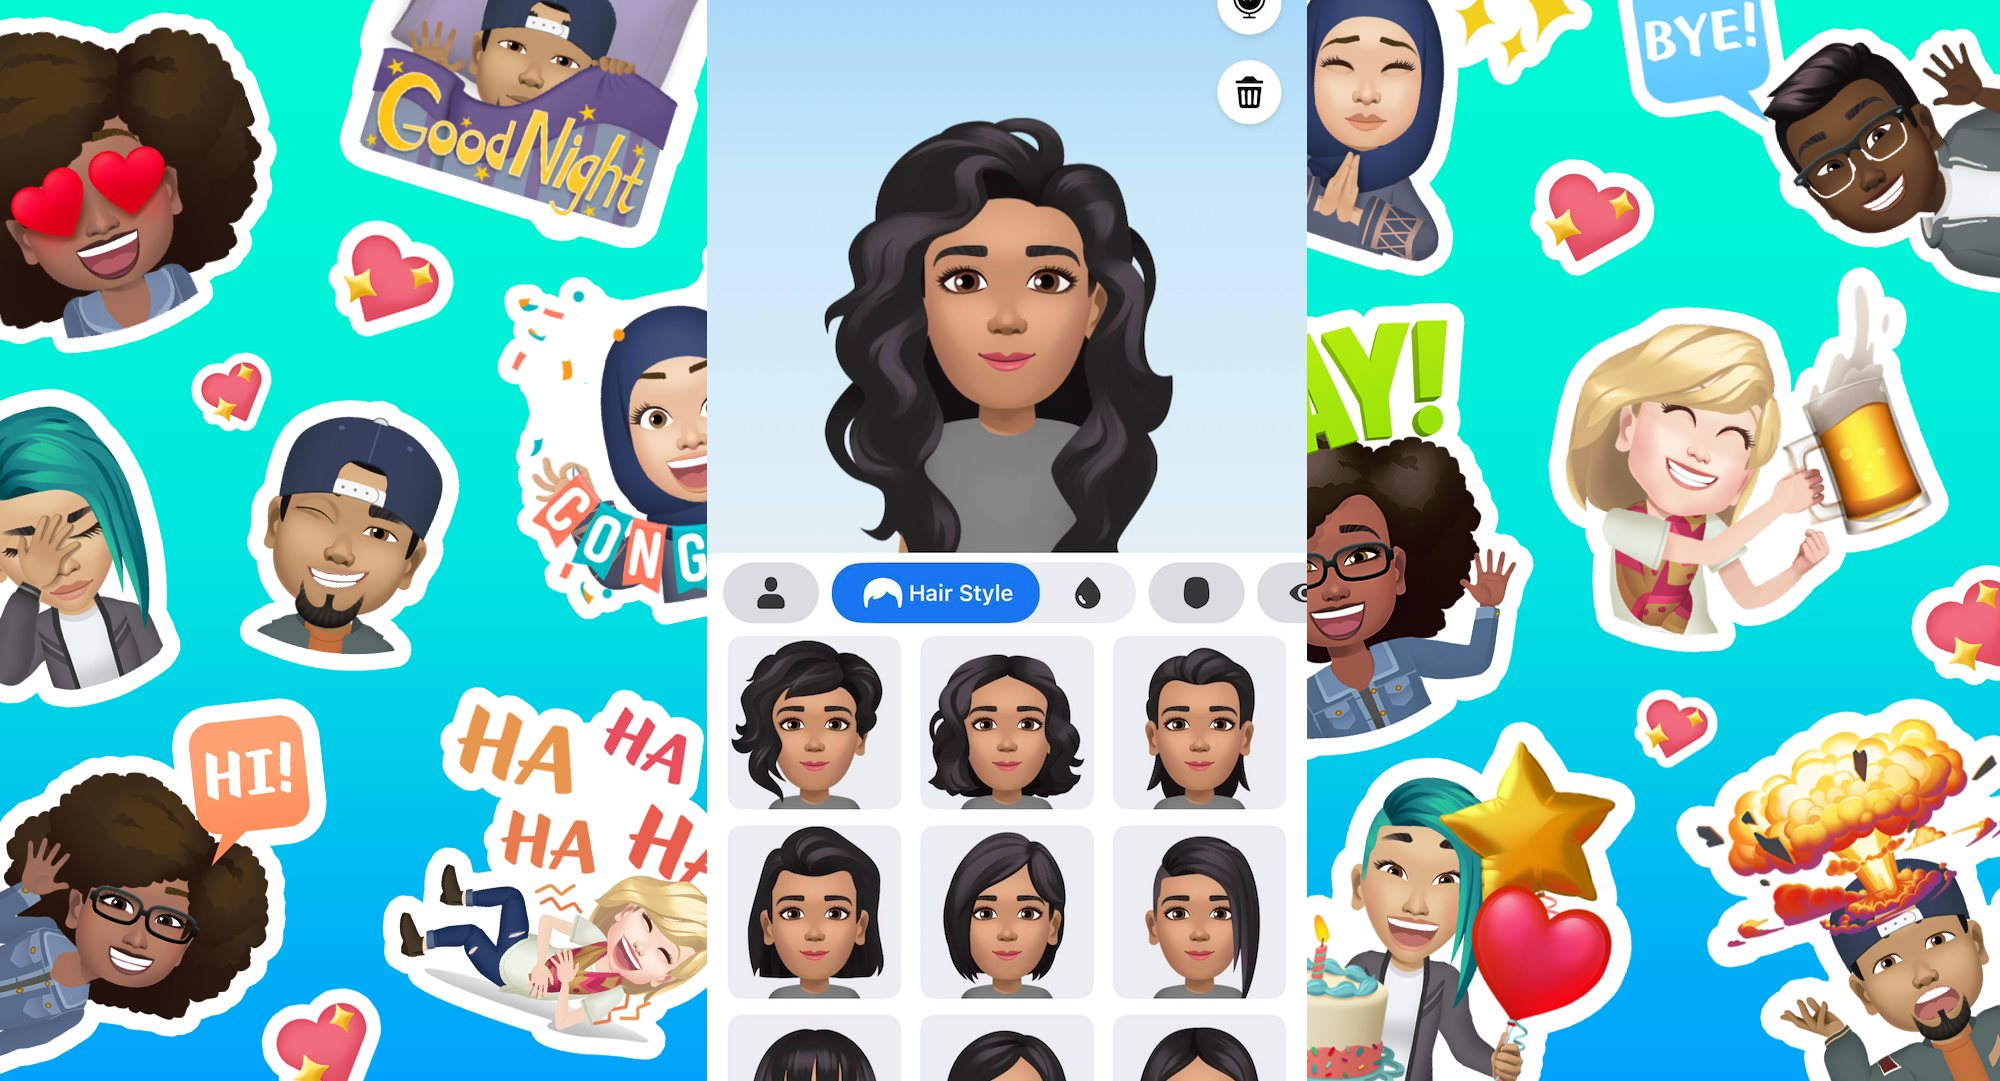 Facebook Brings Its Mobile Messaging Stickers To The Web After Their Designer Leaves